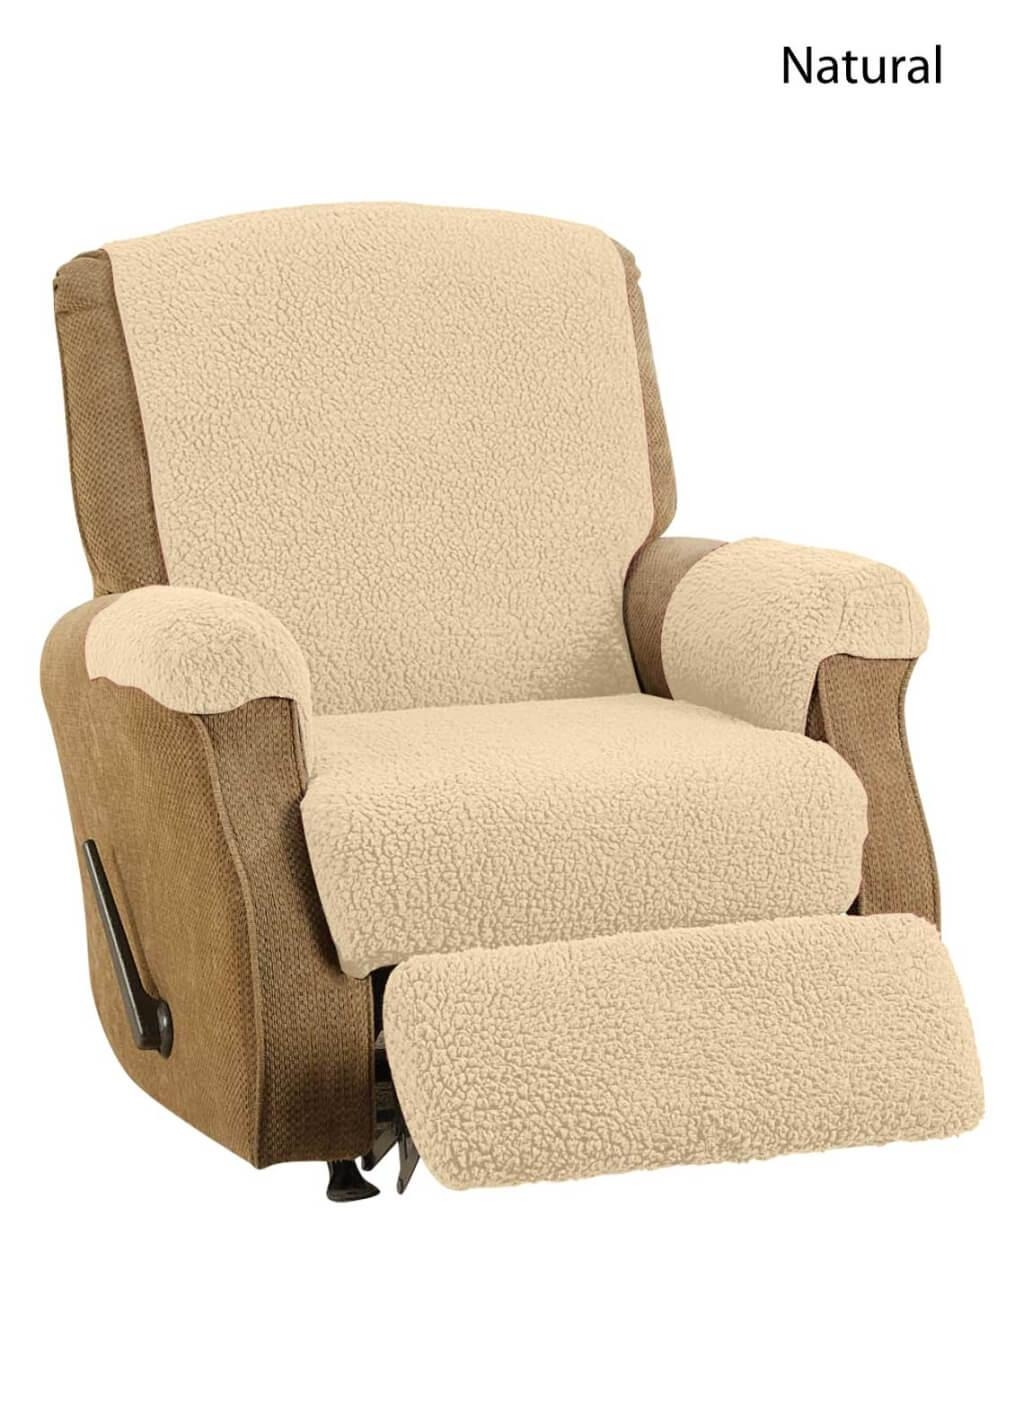 Bed Bath Beyond Recliner Covers